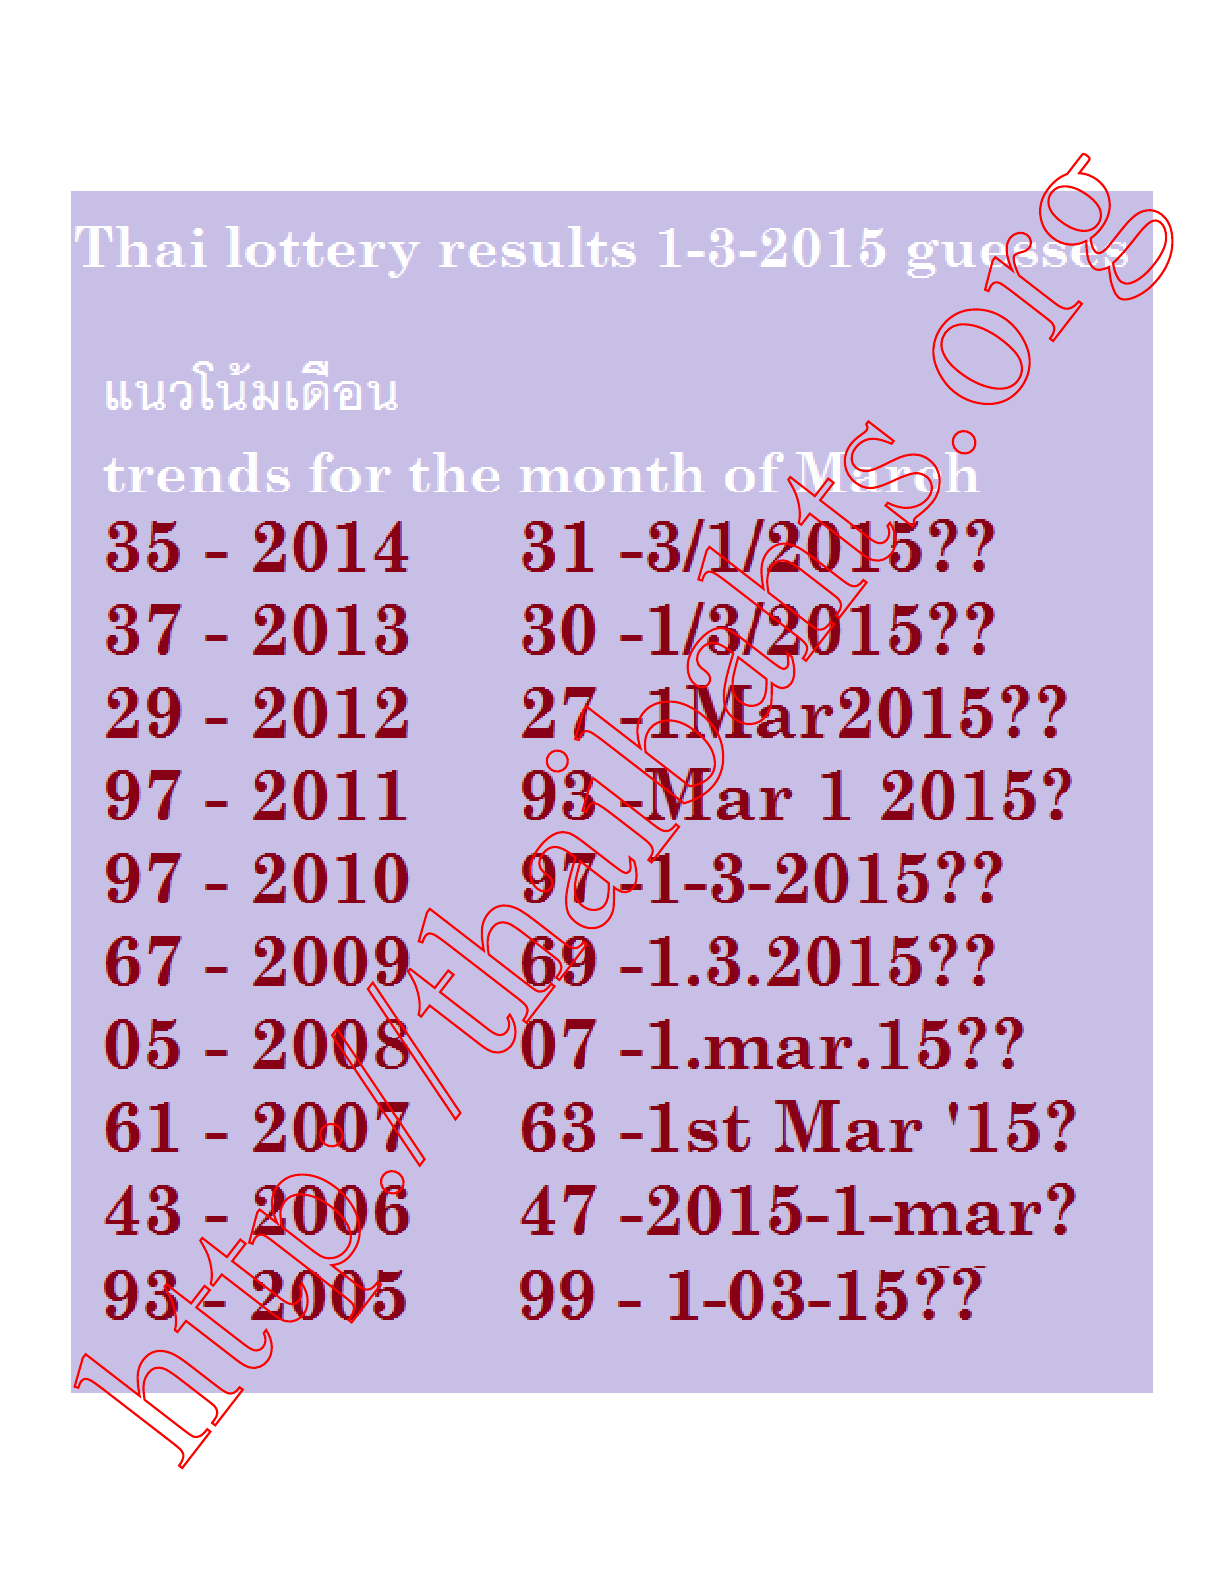 1-3-2015 Thai lottery best tail tip